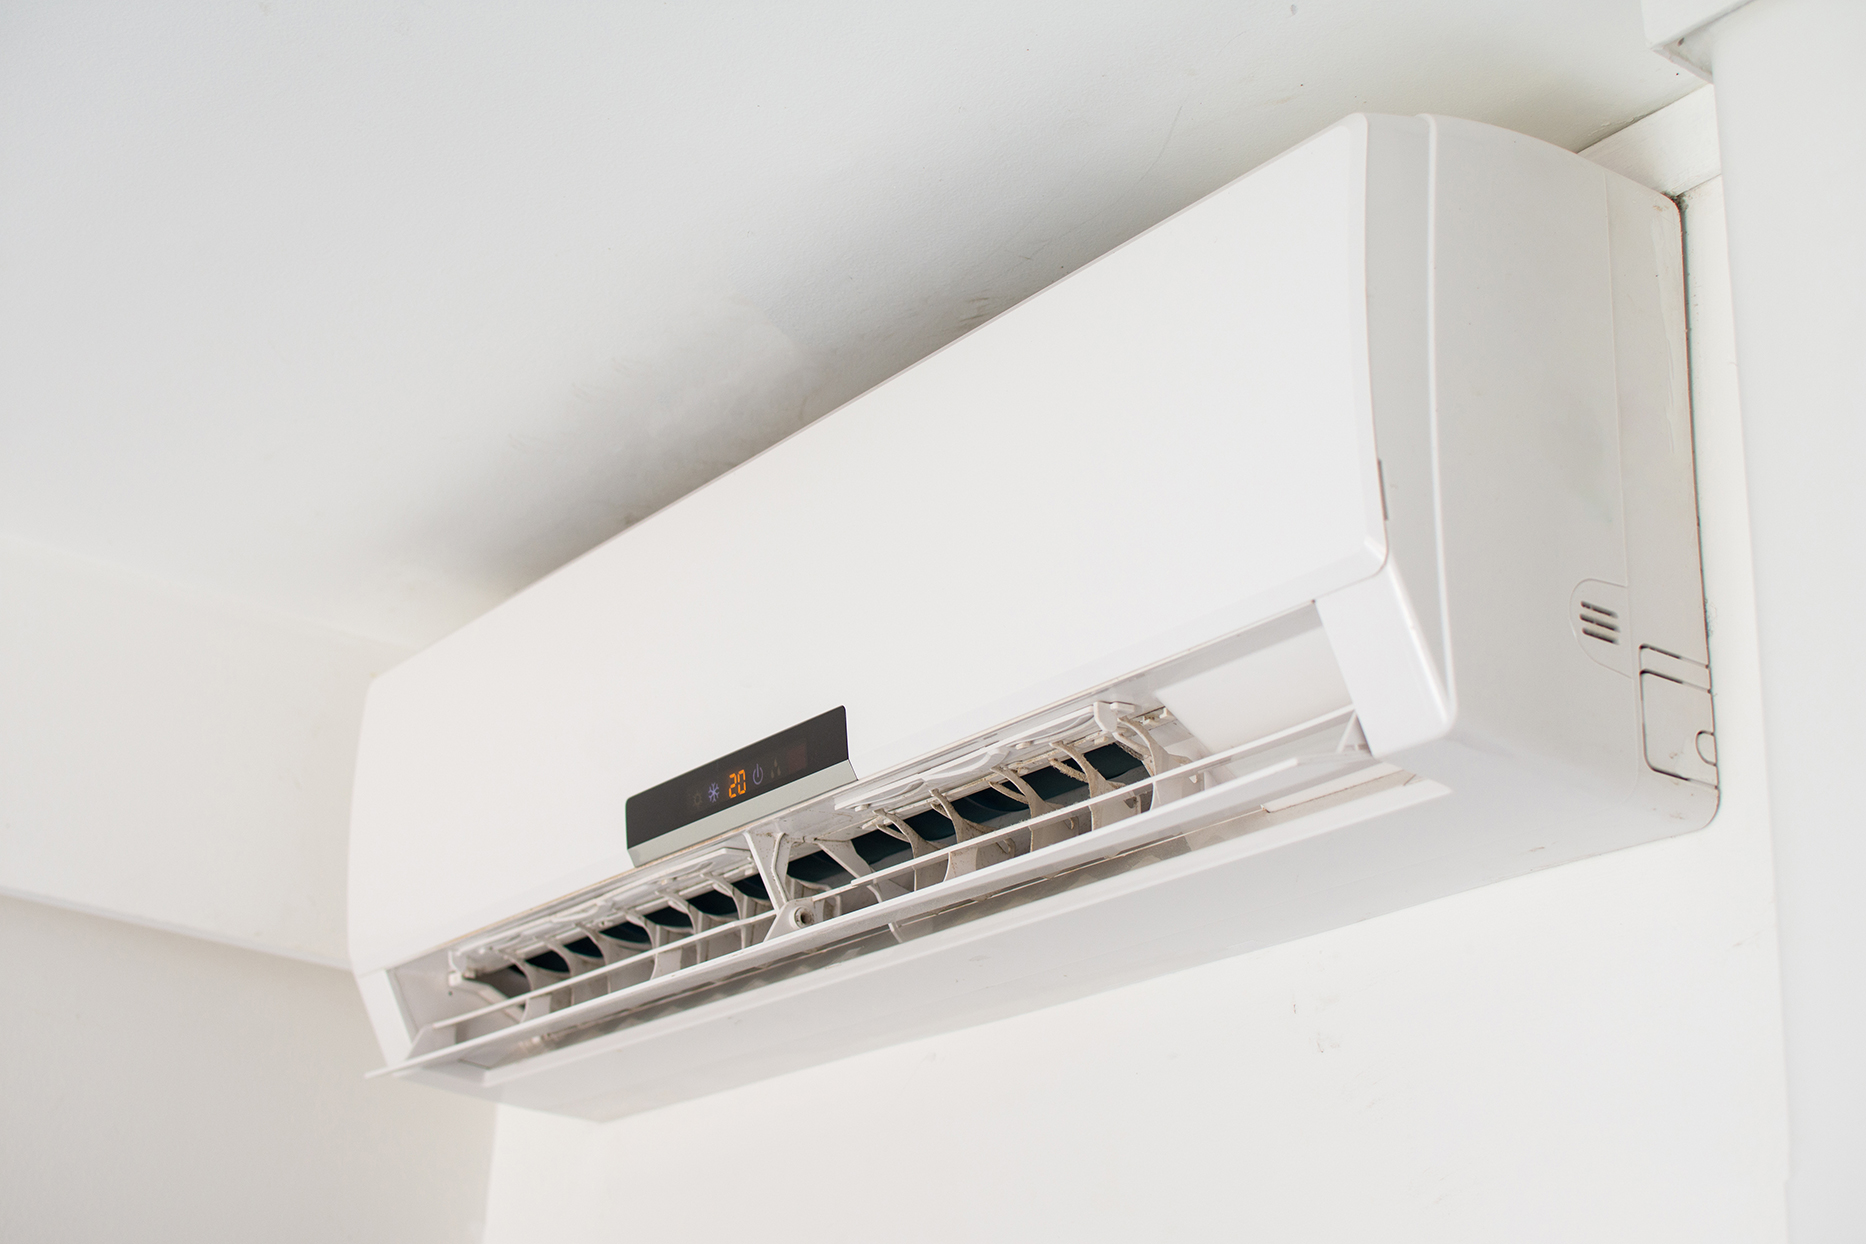 Air conditioning unit near ceiling